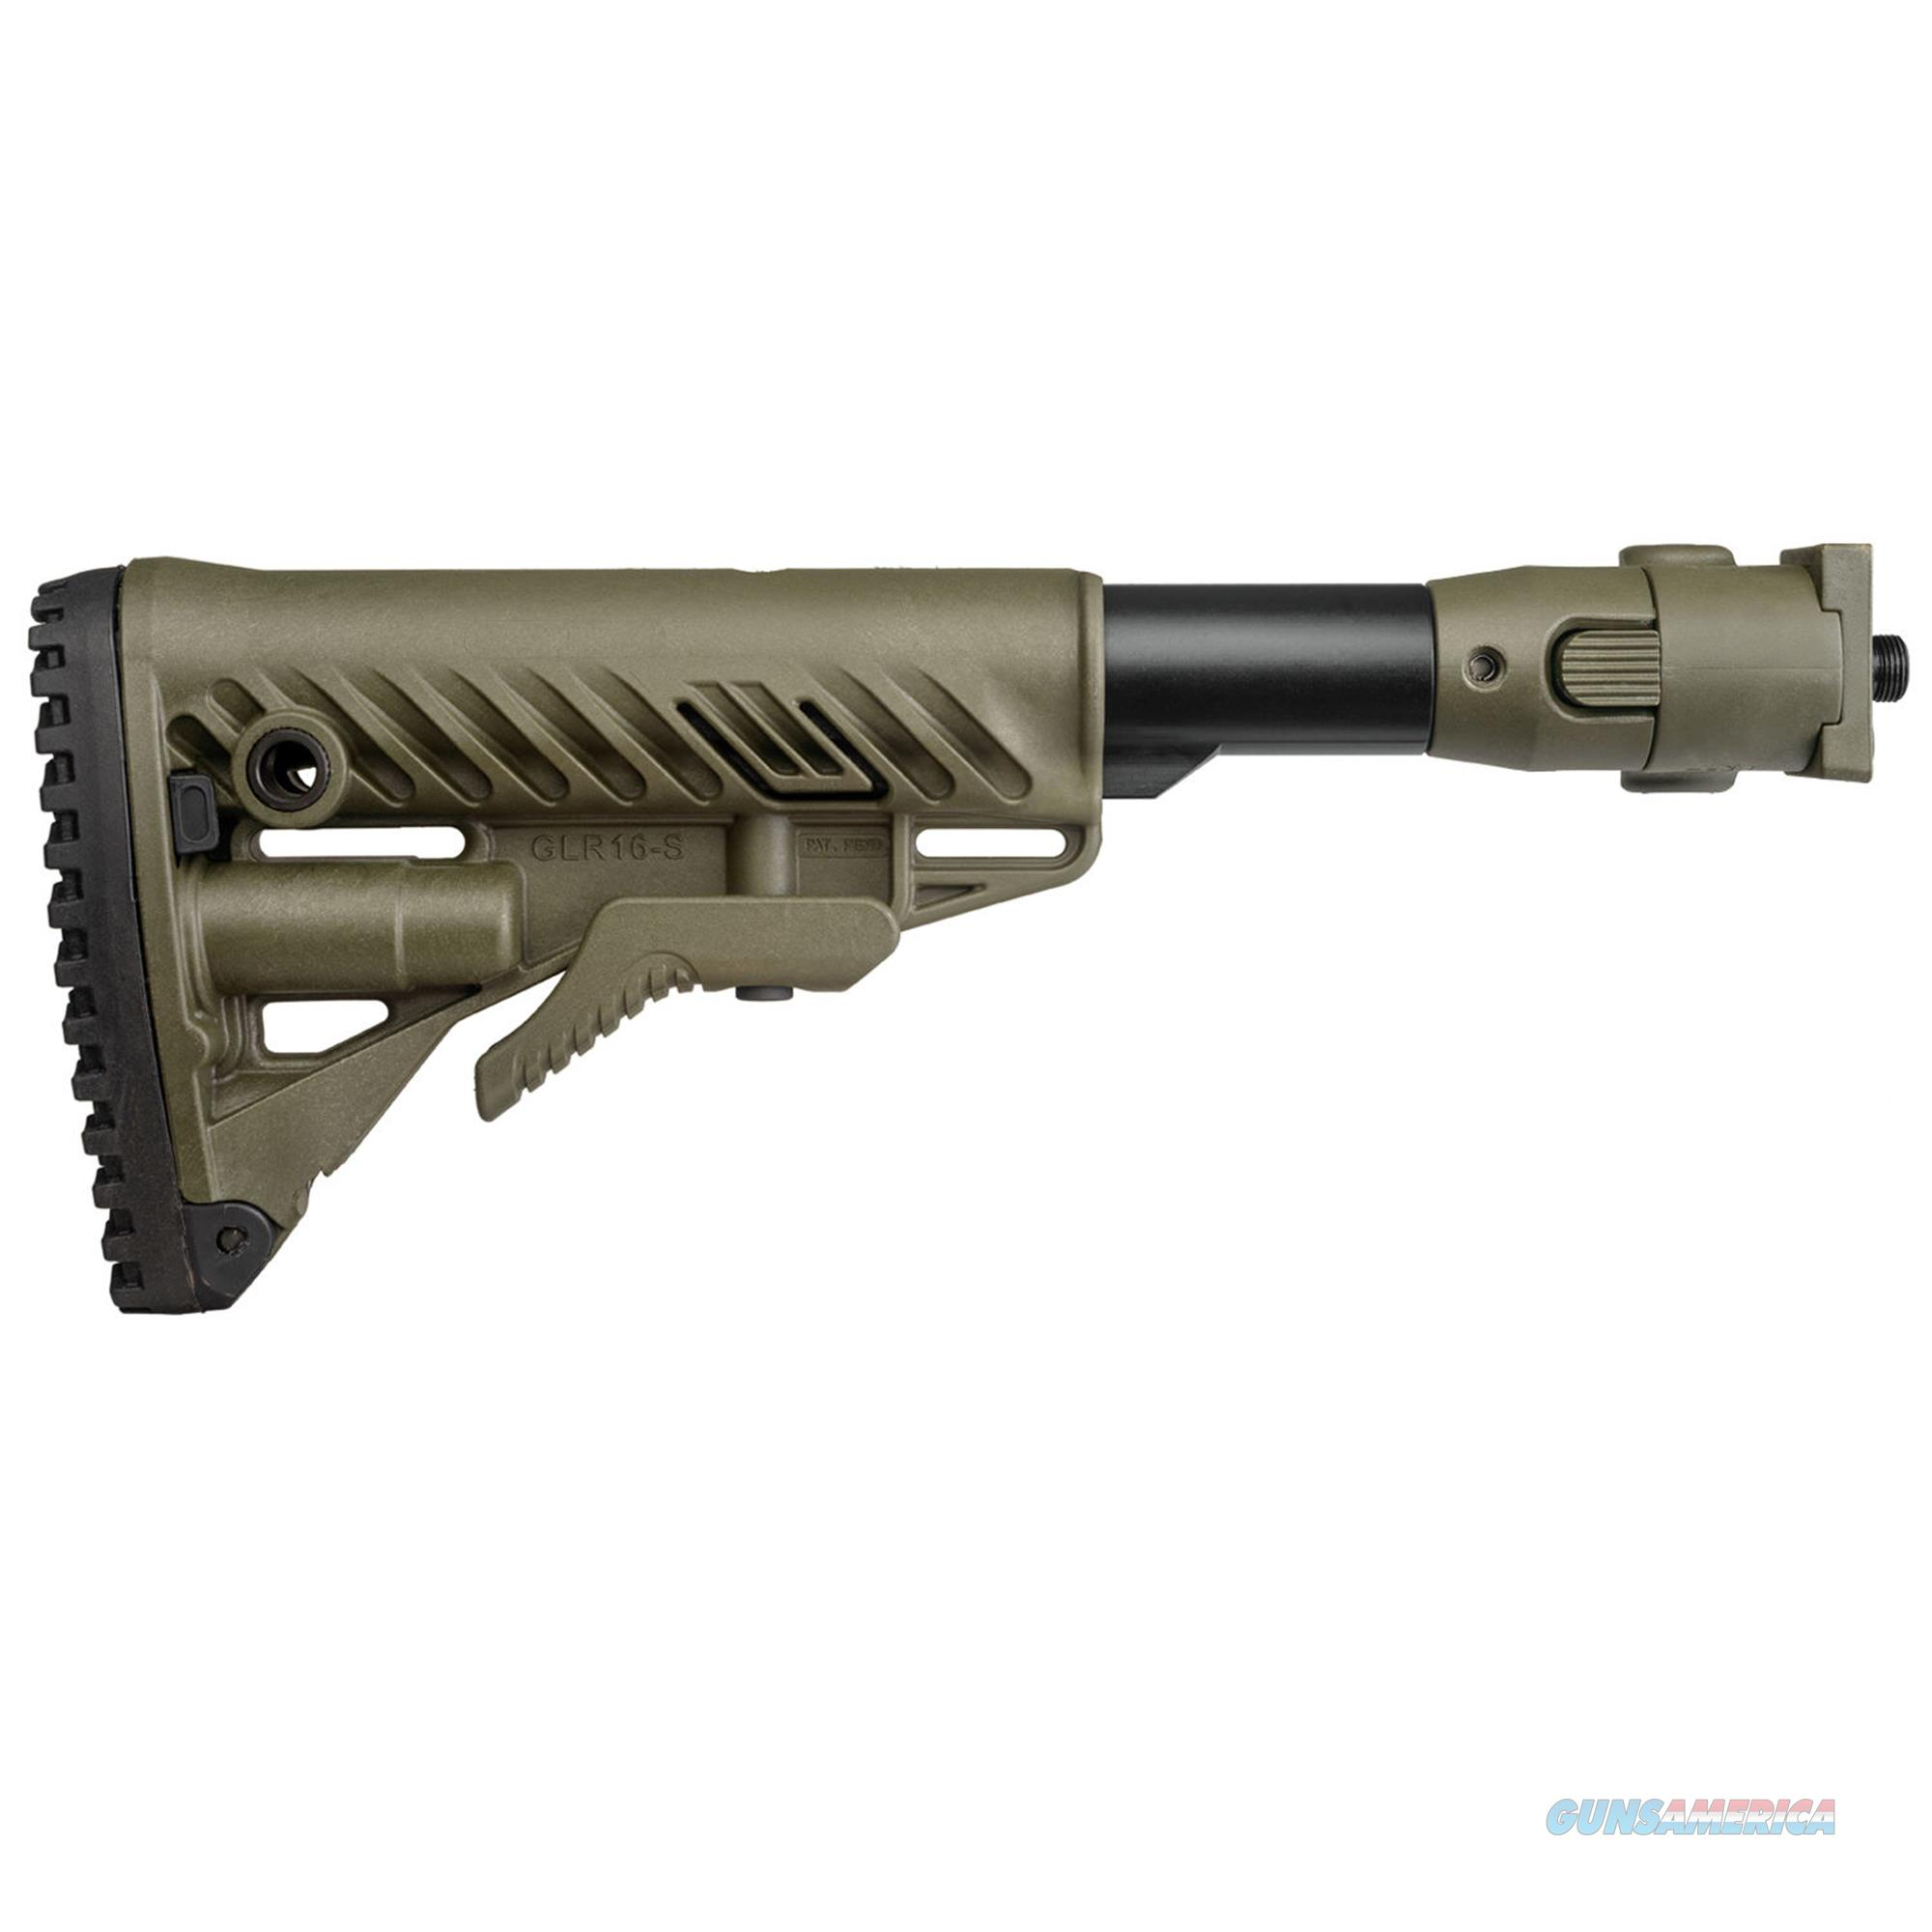 Mako Group Recoil Compensating Folding Collapsible Buttstock System M4VZP SB-OD  Non-Guns > Gunstocks, Grips & Wood